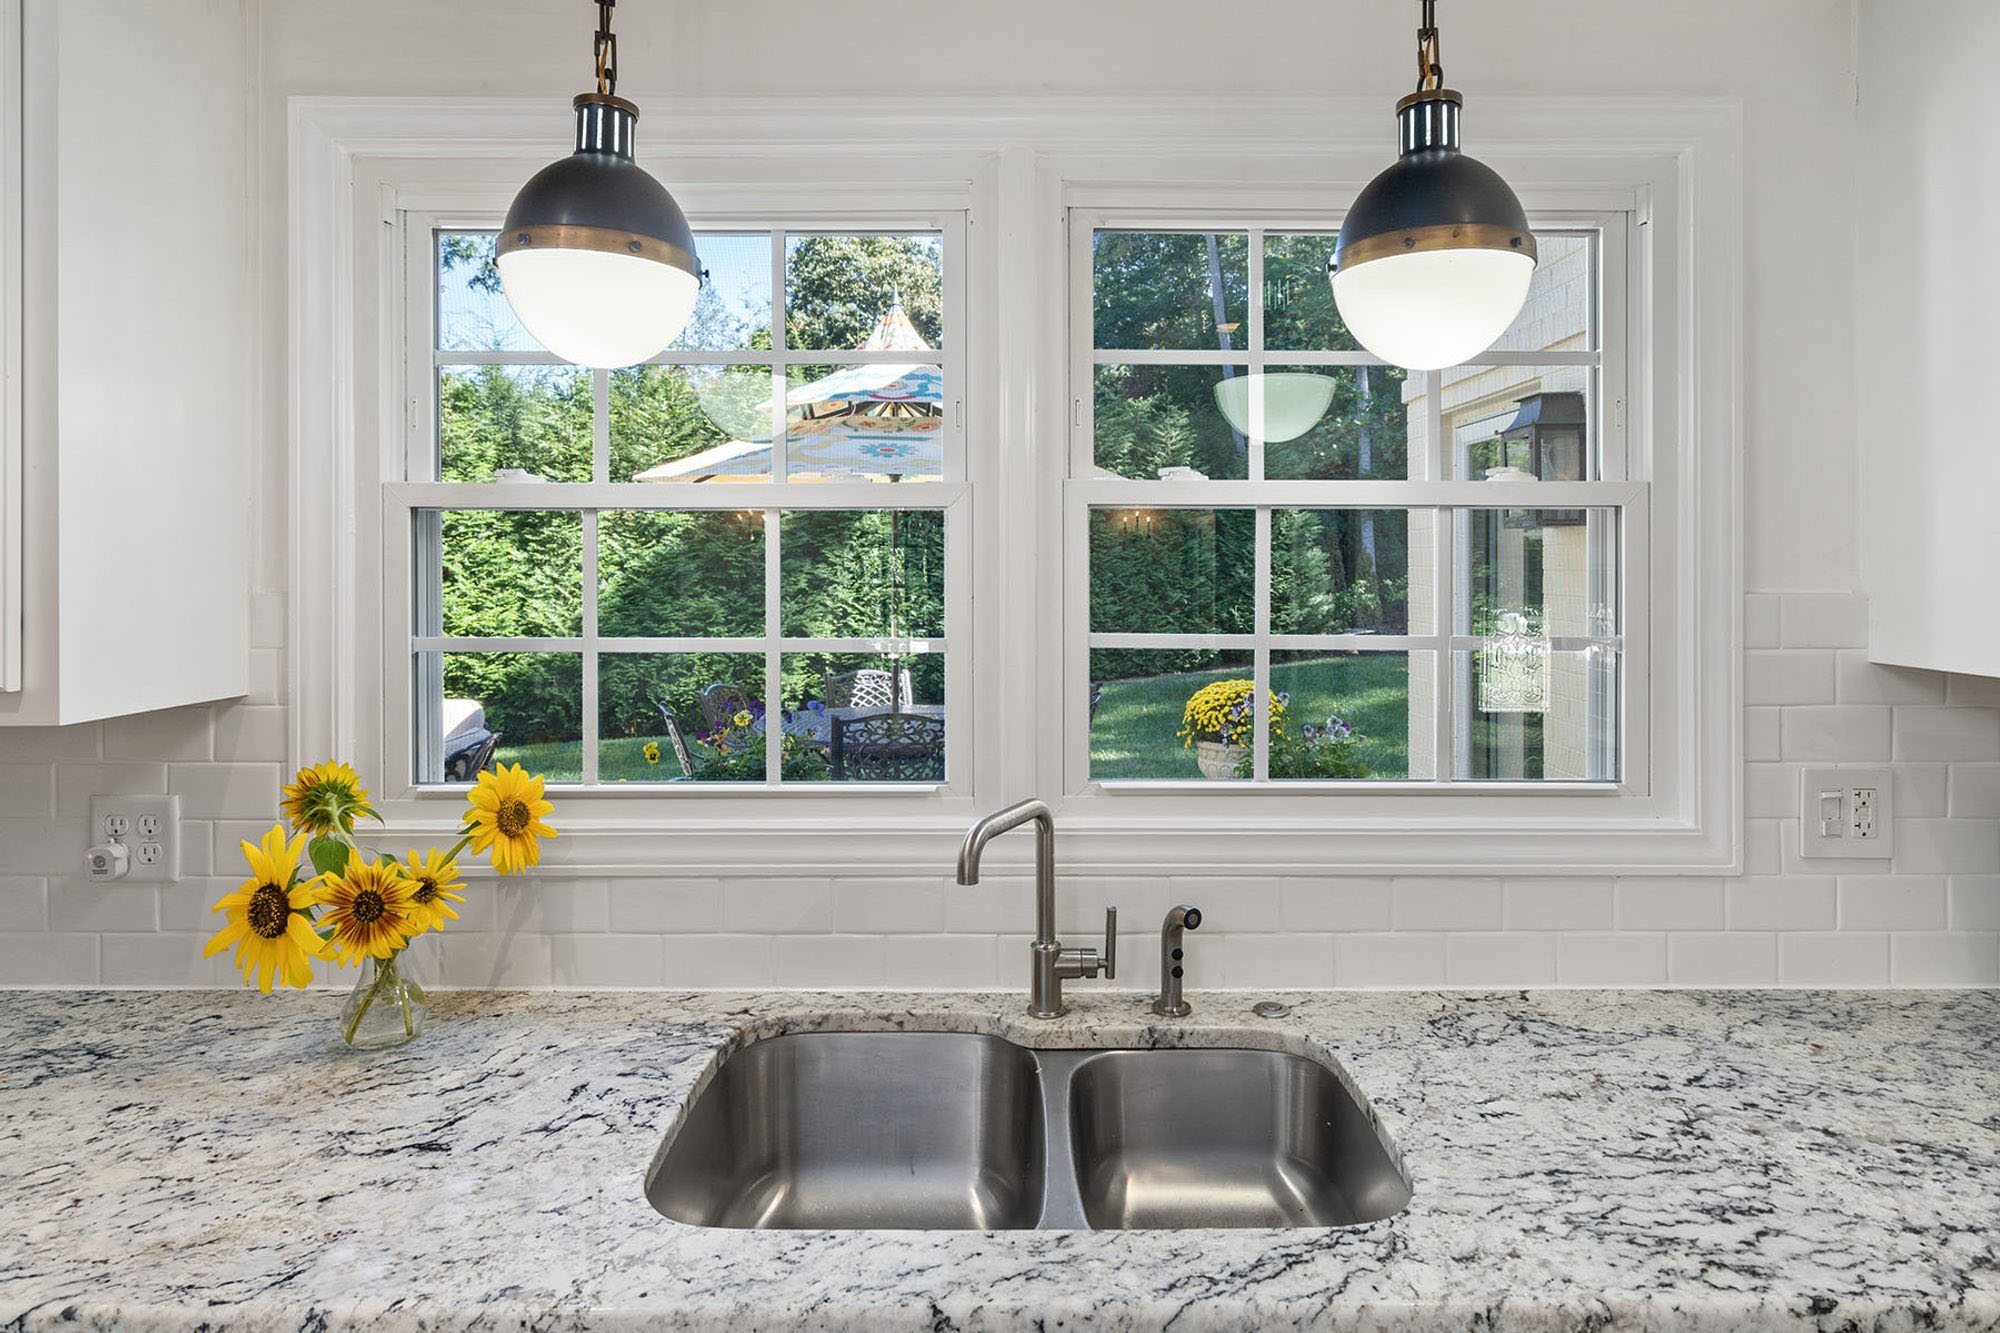 Double basin stainless steel kitchen sink with granite countertops.